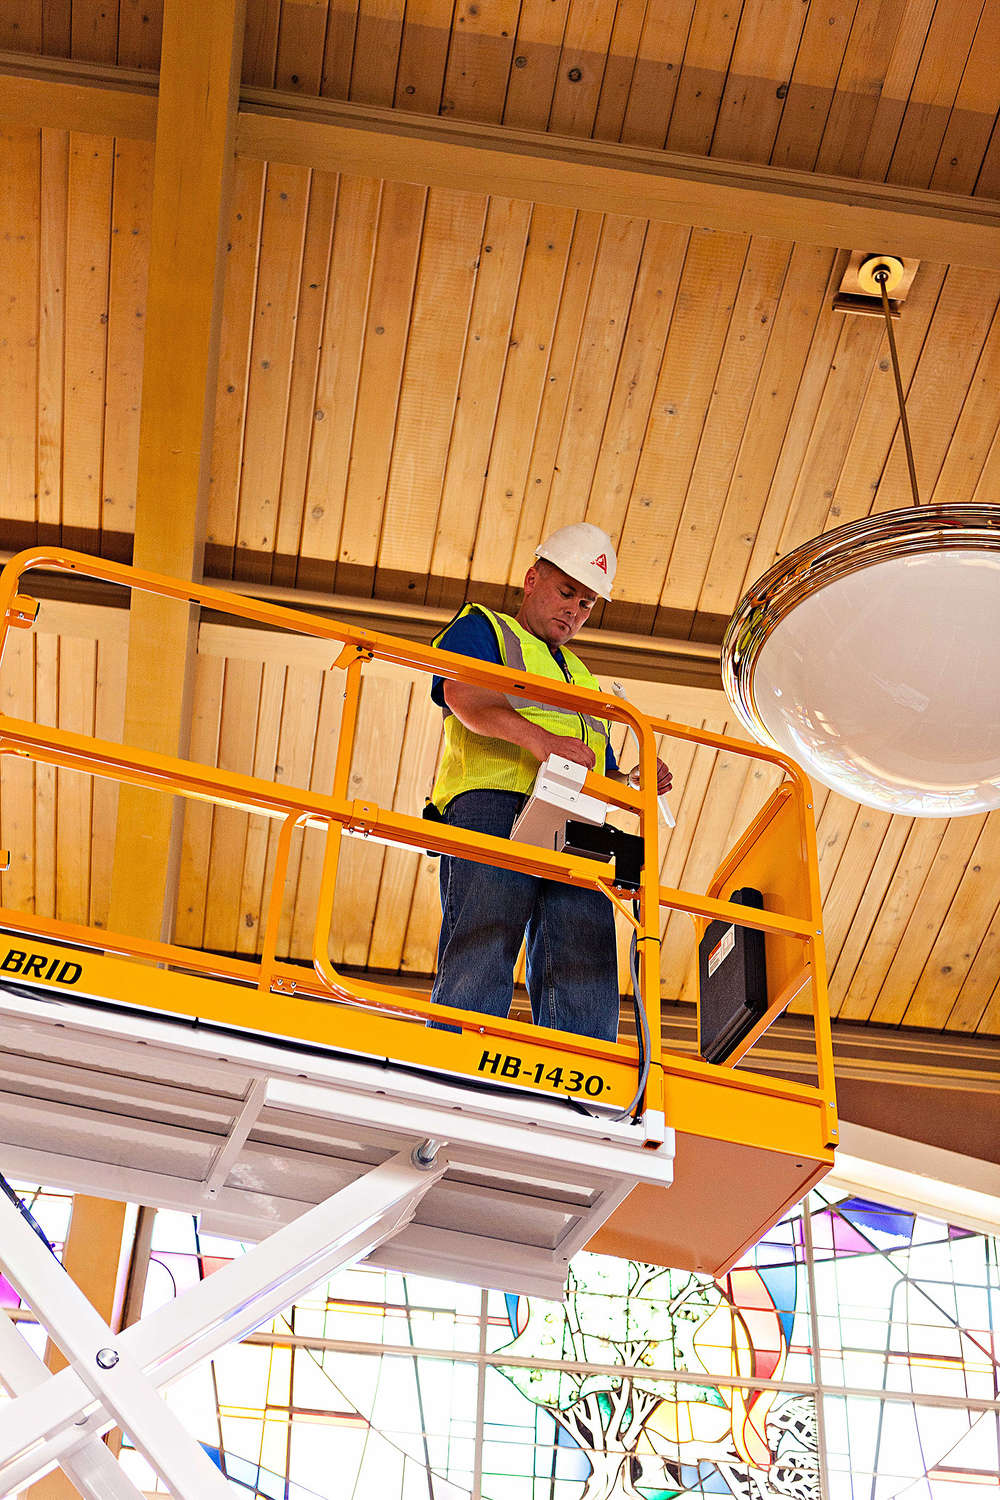 Some scissor lift manufacturers incorporate fully enclosed railings and kickboards around the platform to protect laborers above and below. This keeps materials and tools safely inside the platform, preventing any from falling and potentially hitting another worker.